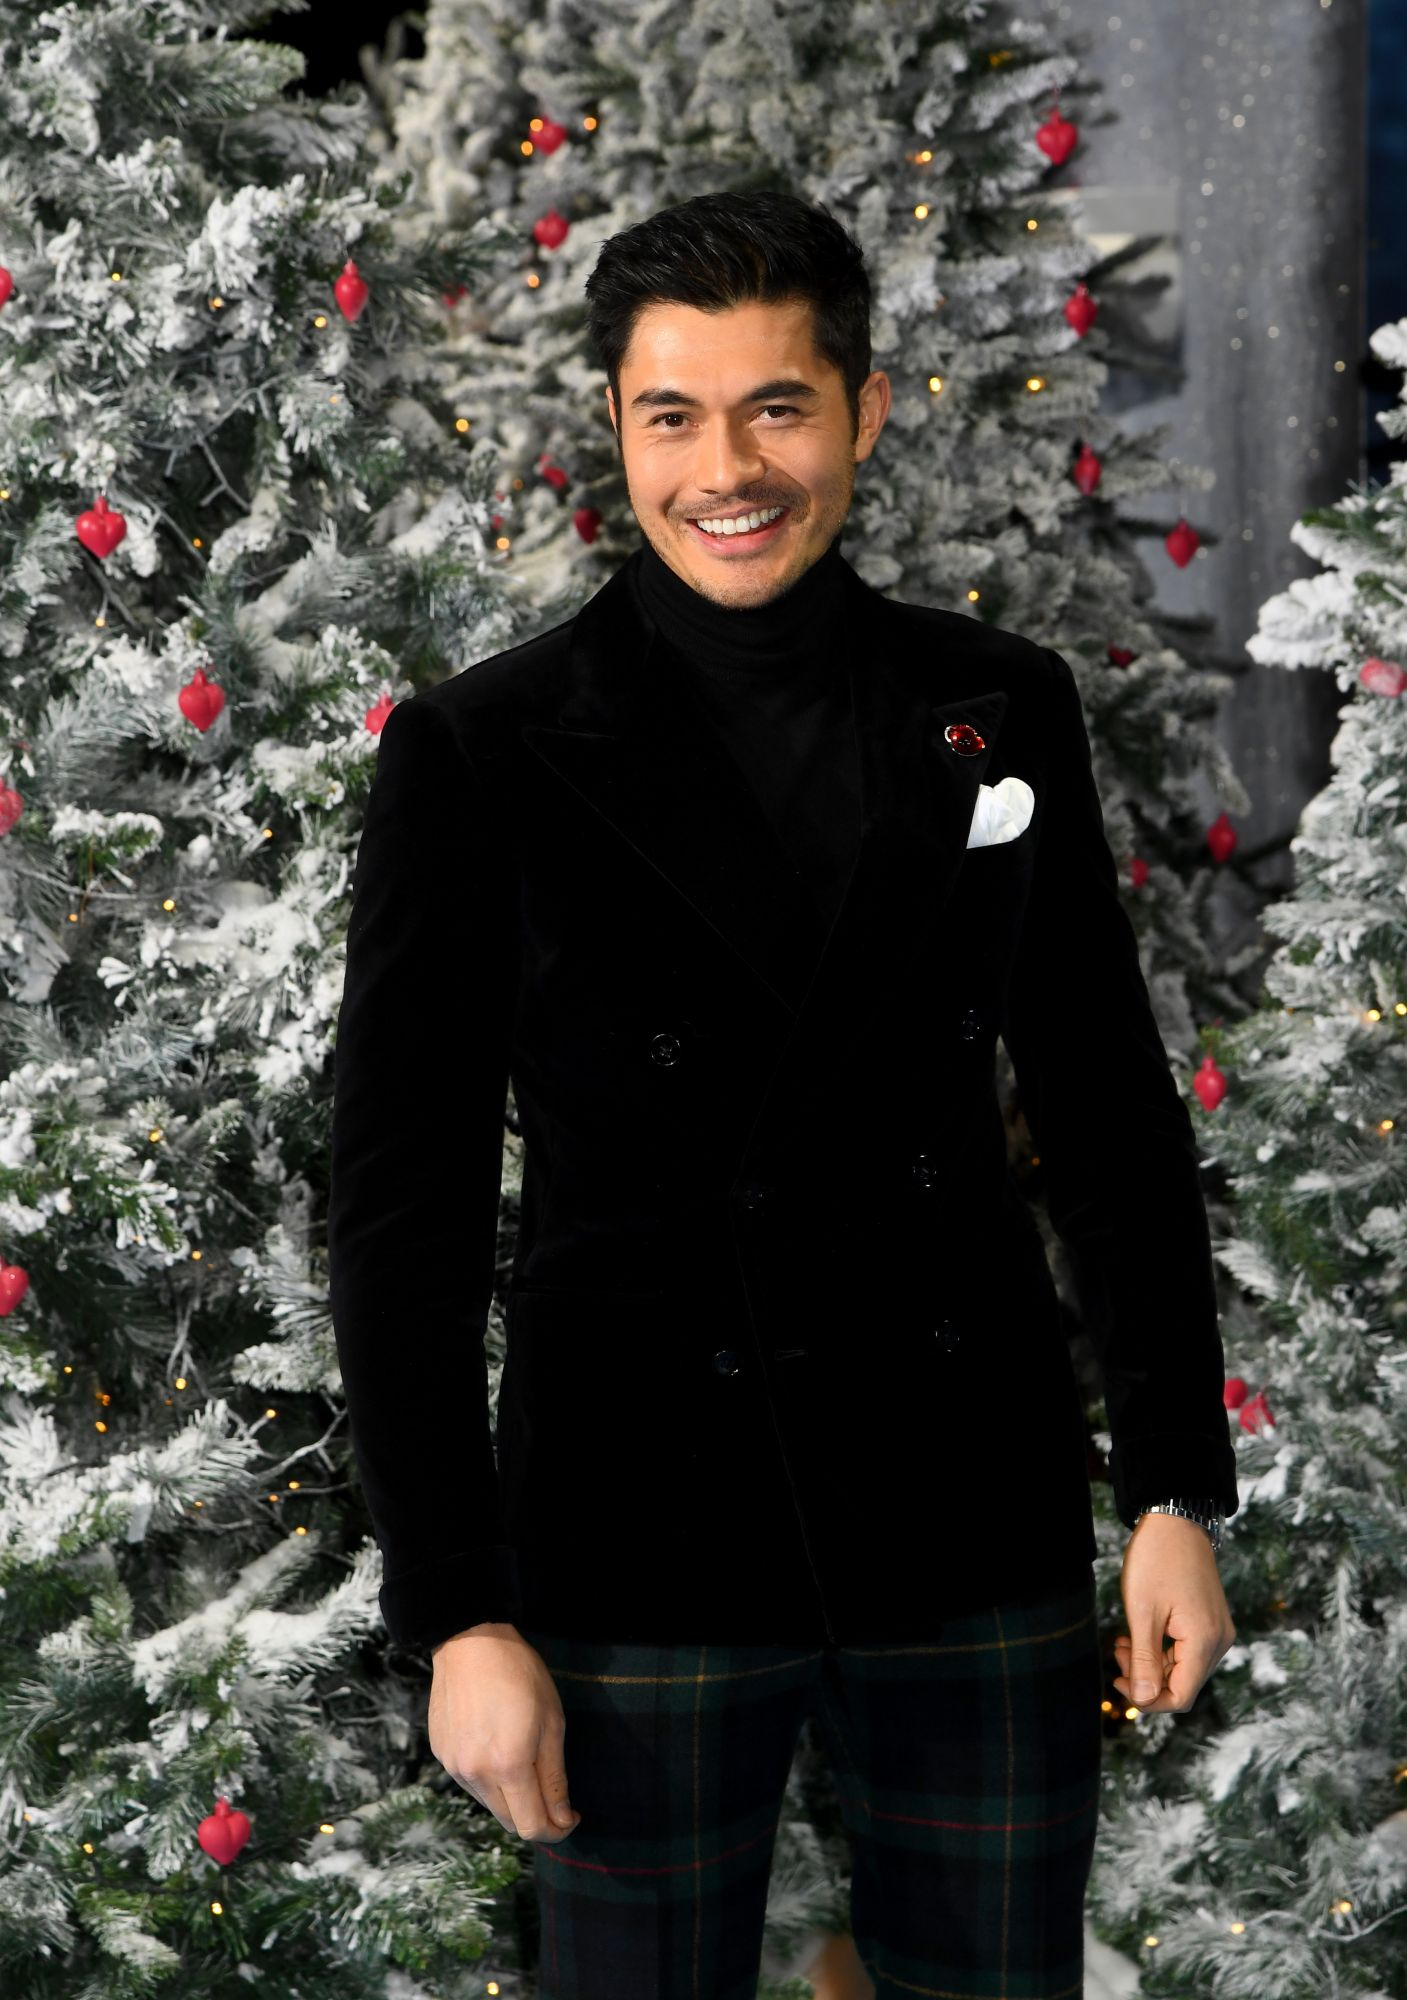 """LONDON, ENGLAND - NOVEMBER 11: Henry Golding attends the """"Last Christmas"""" UK Premiere at BFI Southbank on November 11, 2019 in London, England. (Photo by Dave J Hogan/Getty Images)"""